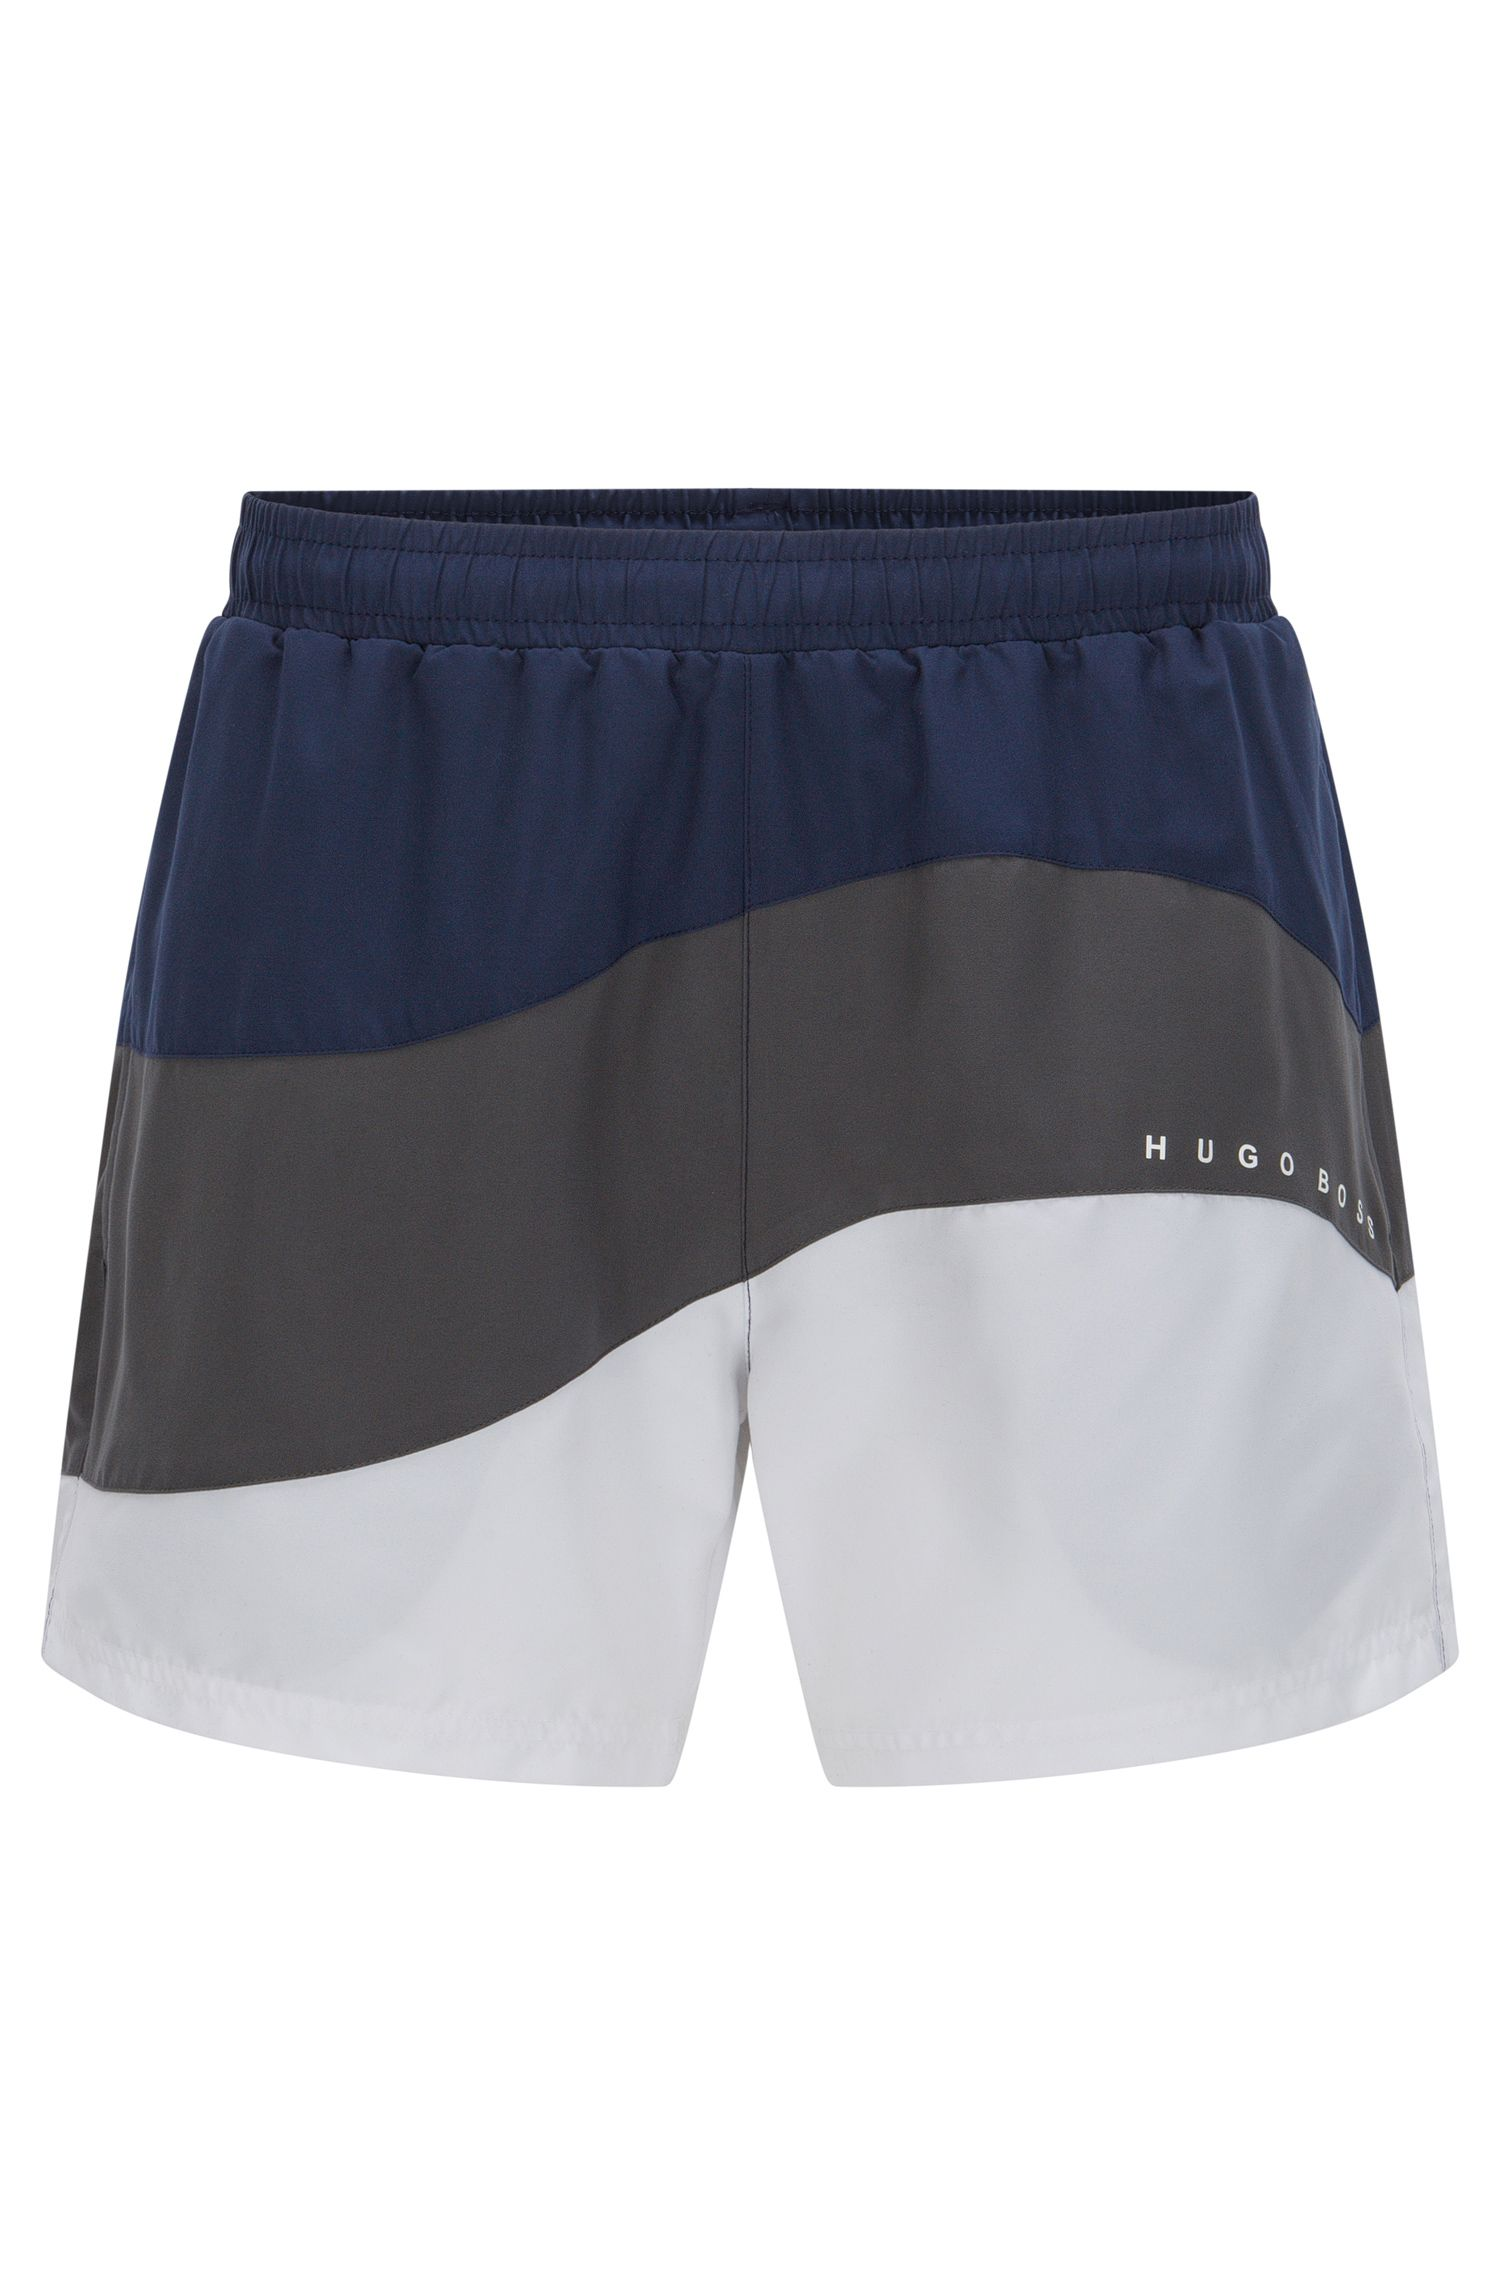 Colorblock Quick Dry Swim Trunk | Butterflyfish